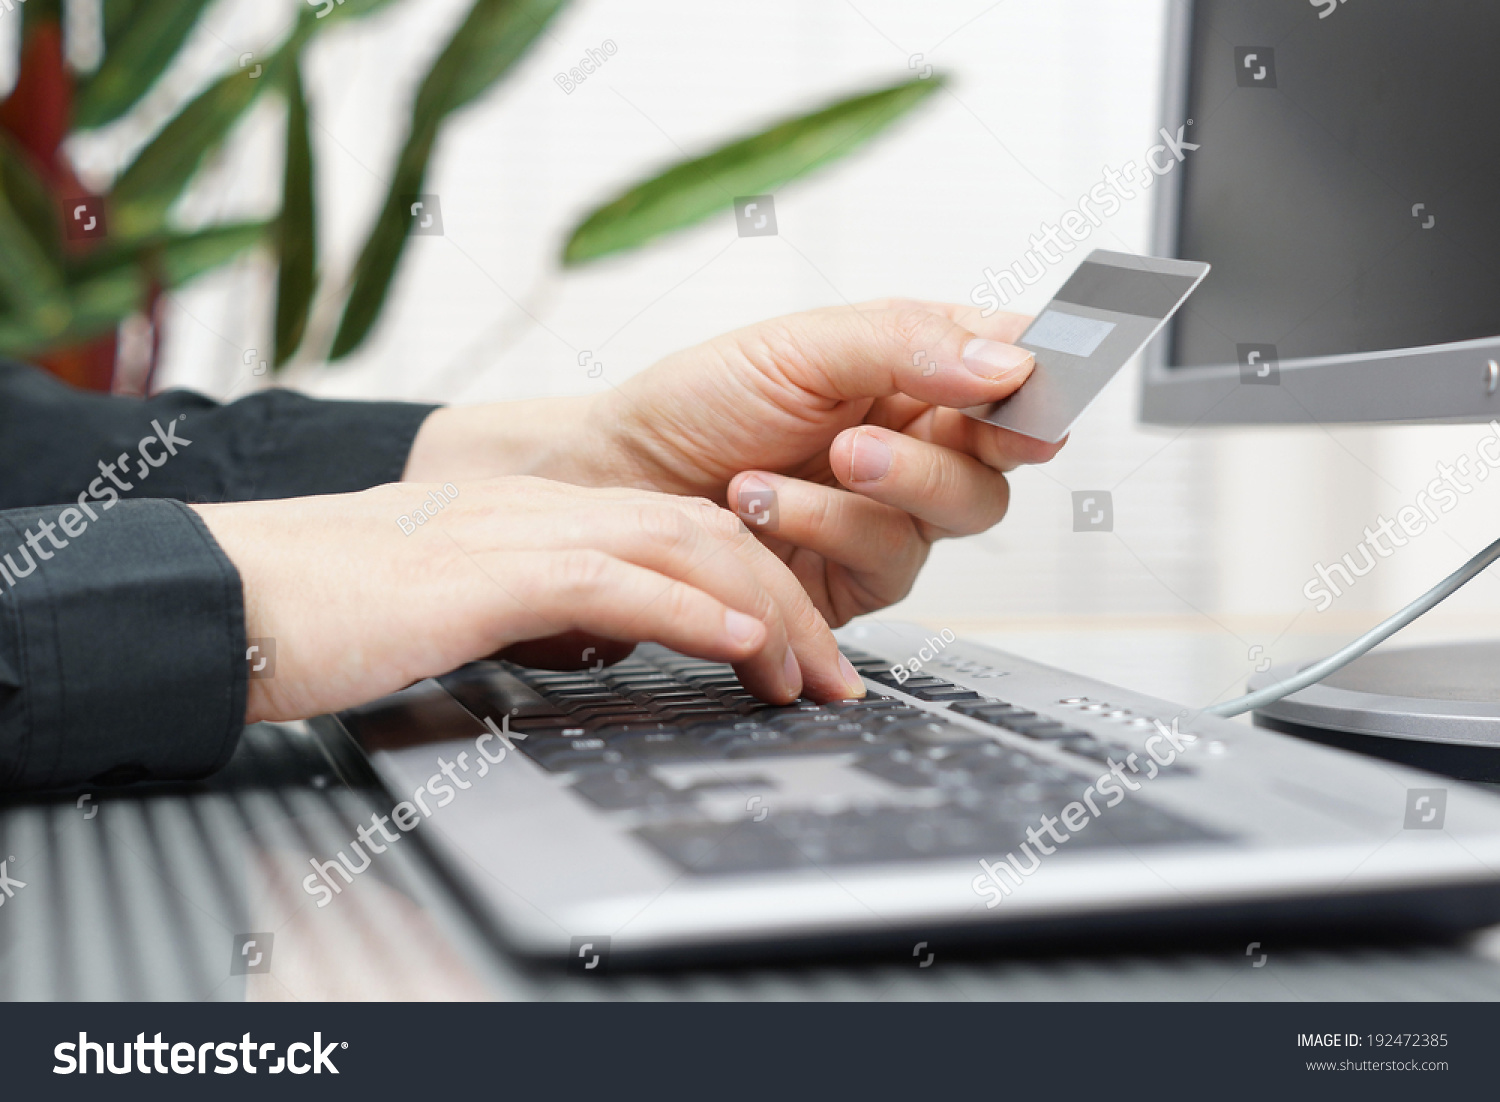 Man Is Using Credit Card And Computer For On Line Payment. Interior Design School Arizona. Ohio State University Nursing Program. Home Warranty Reviews Consumer Reports. Harris County Criminal Lawyers. Strength And Conditioning Classes. Massage Therapy Business Names. Manual Testing Tools Material. Art School In Nashville Portland Tax Attorney